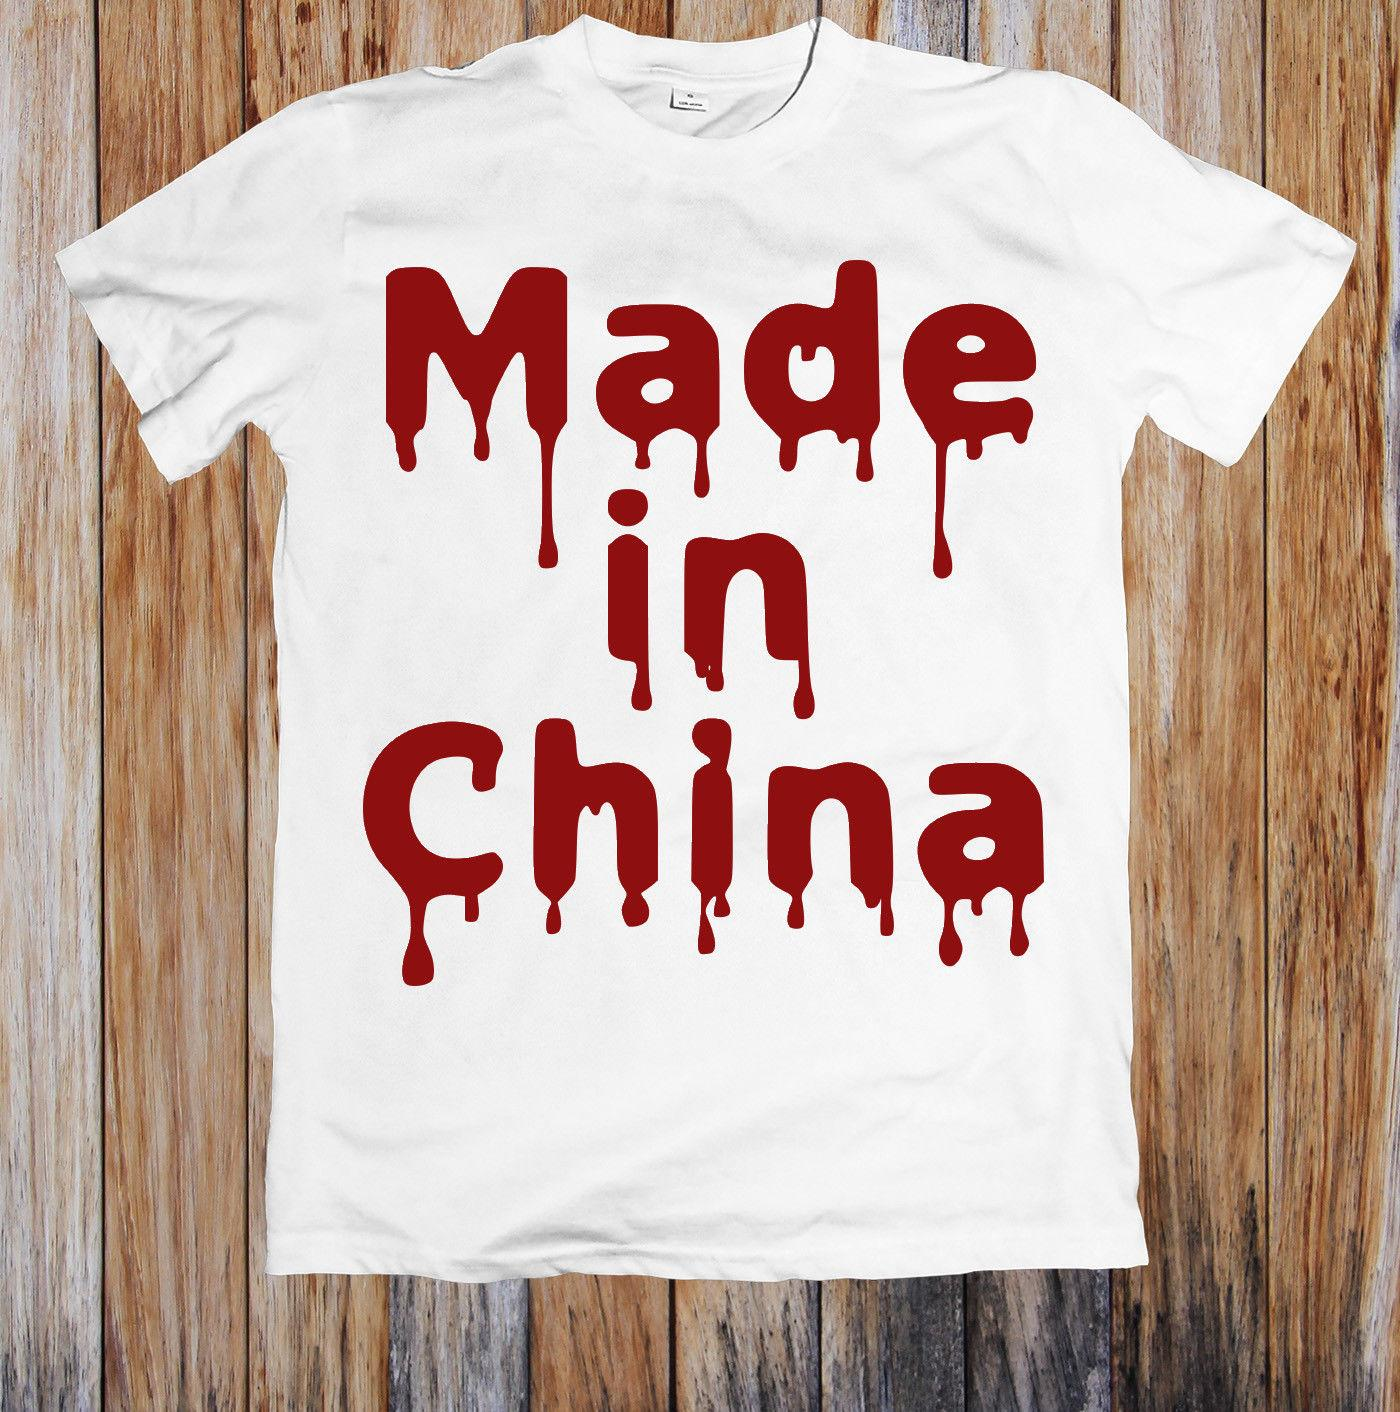 e428ea849 BLOODY MELTING MADE IN CHINA FUNNY UNISEX T SHIRT Cotton Fashion Men T Shirt  It T Shirt Design Clever Tee Shirts From Gaobei10, $11.48| DHgate.Com